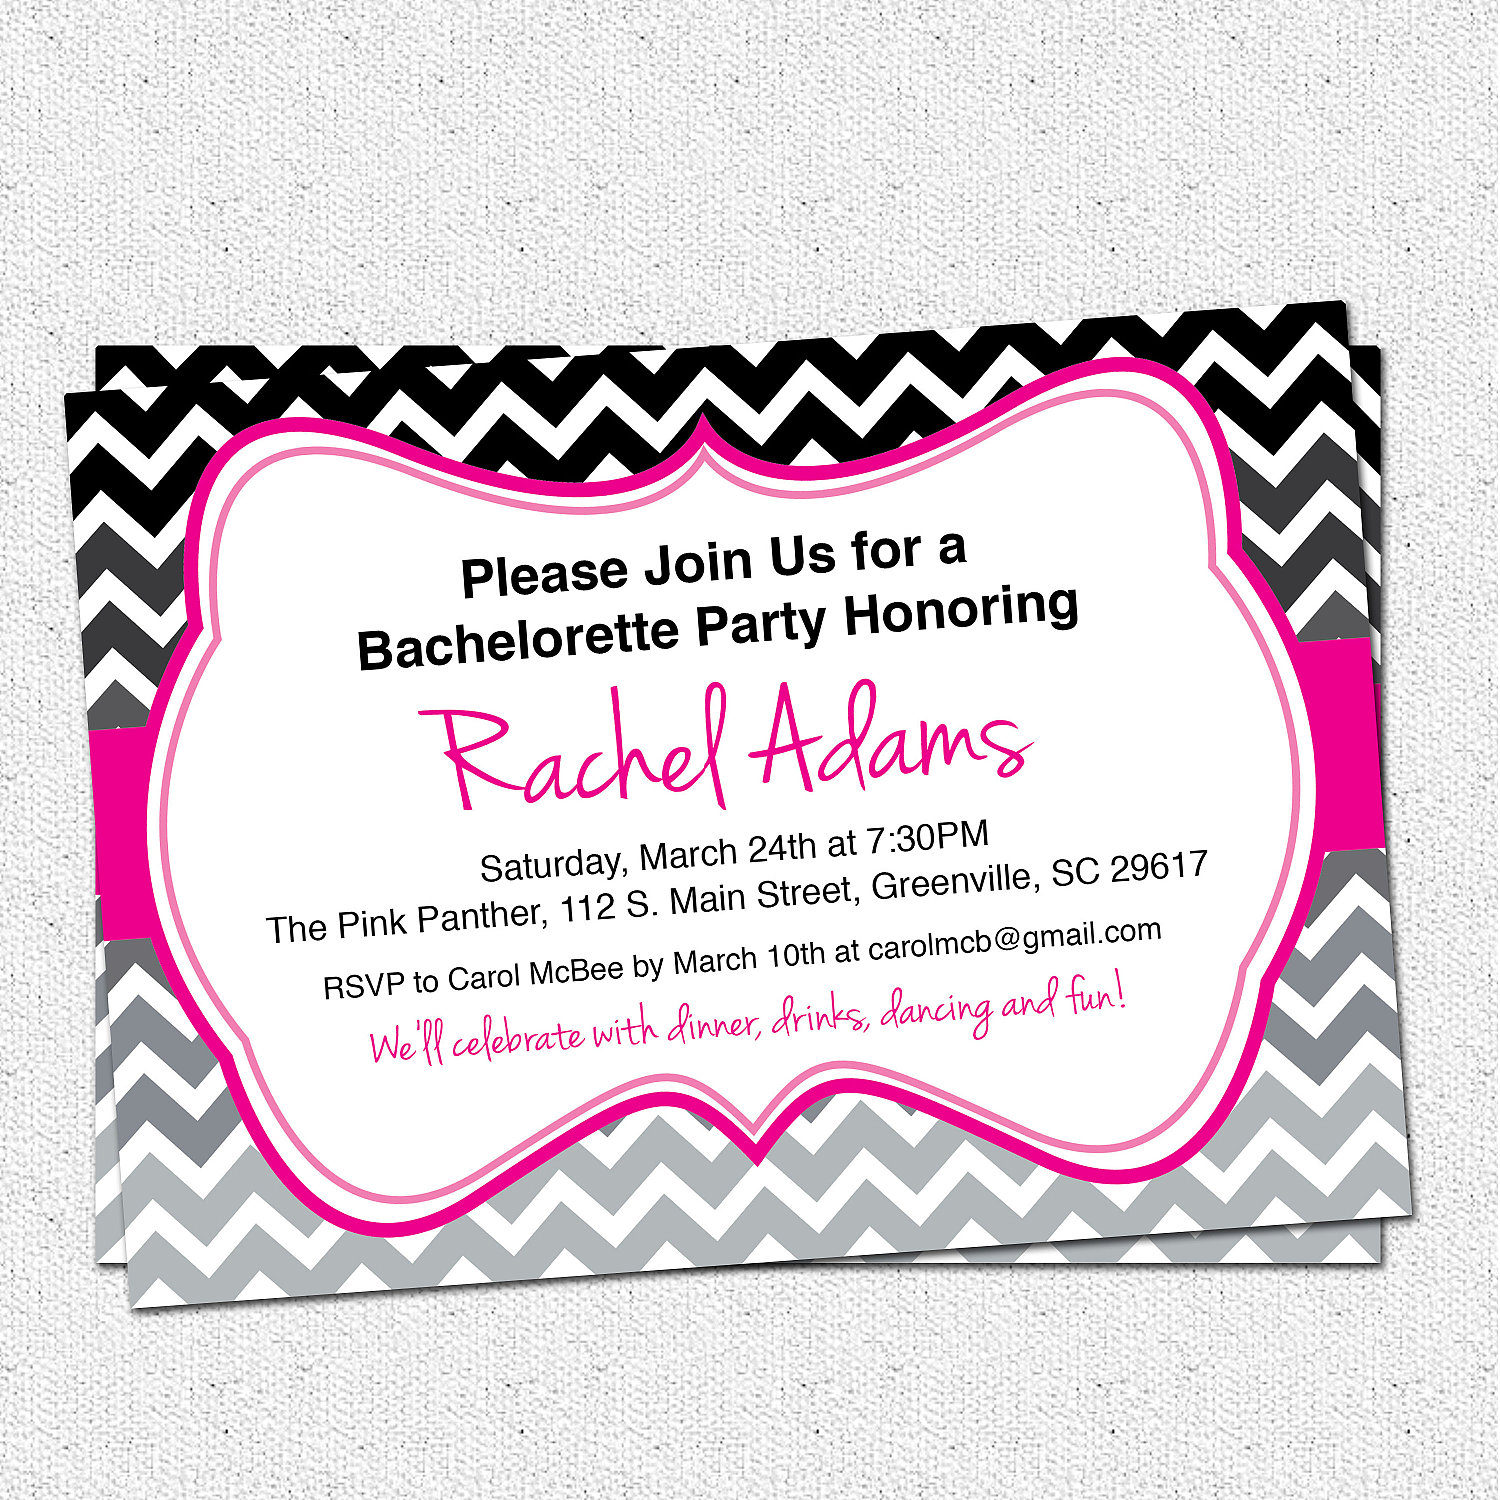 Bachelorette Party Invitations Bridal Shower Birthday Chevron – Bridal Shower and Bachelorette Party Invitations